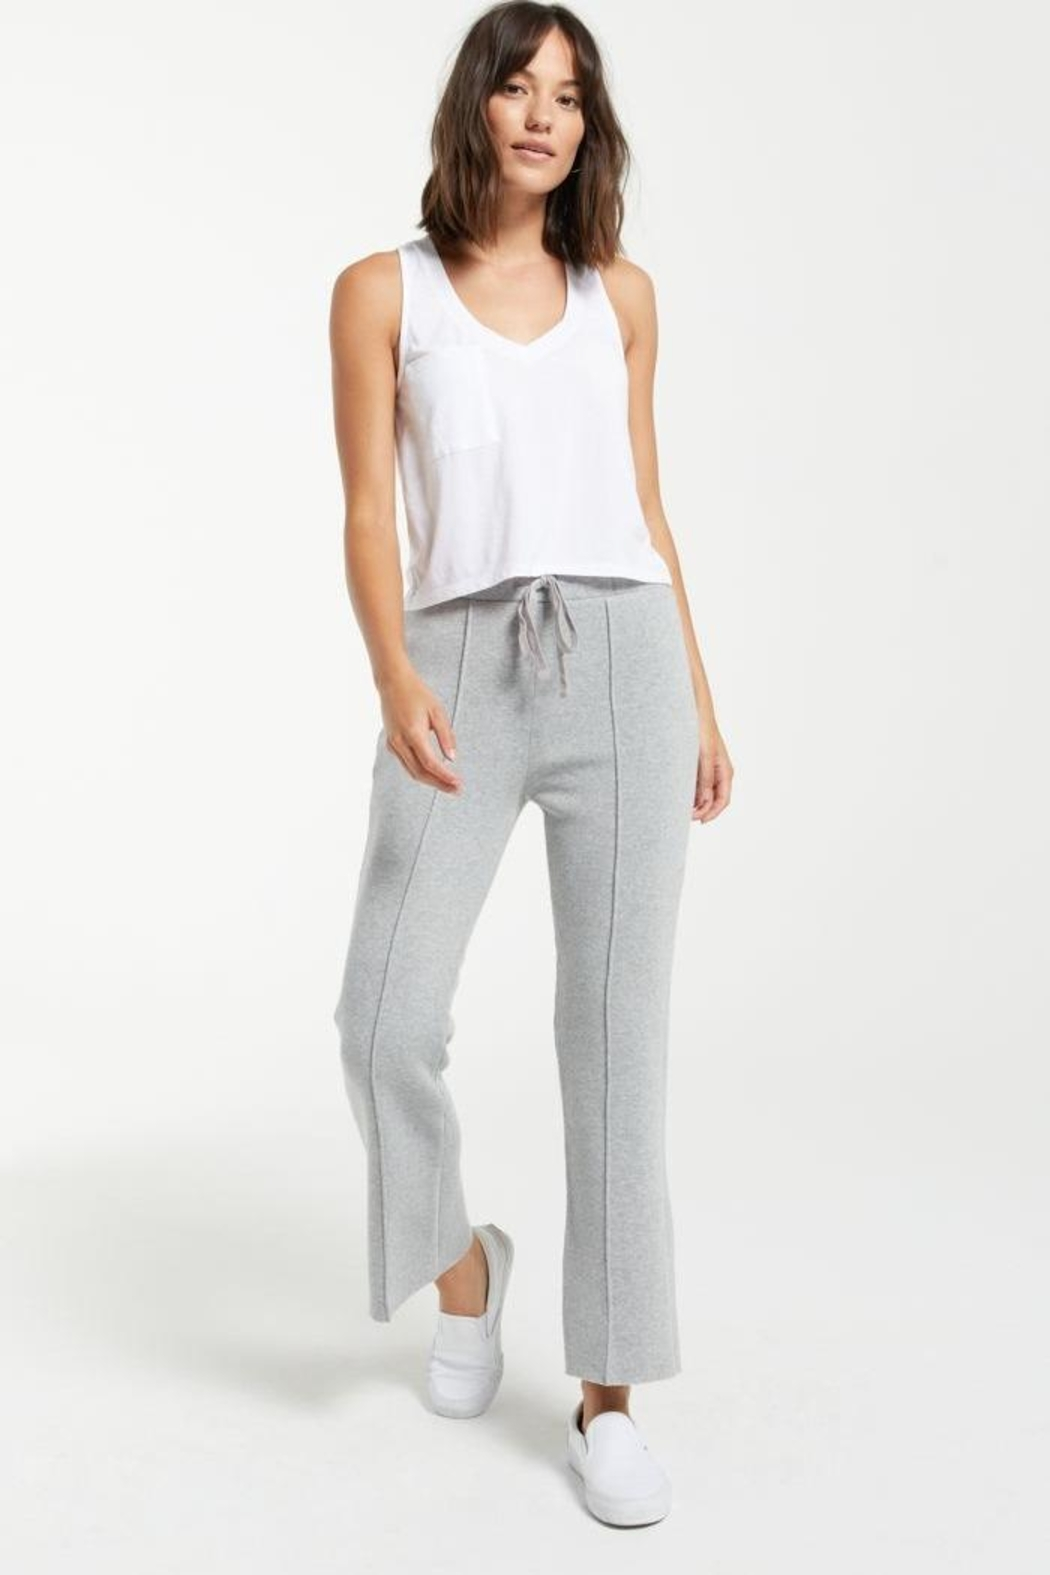 z supply Peyton Cropped Sweatpant - Front Full Image